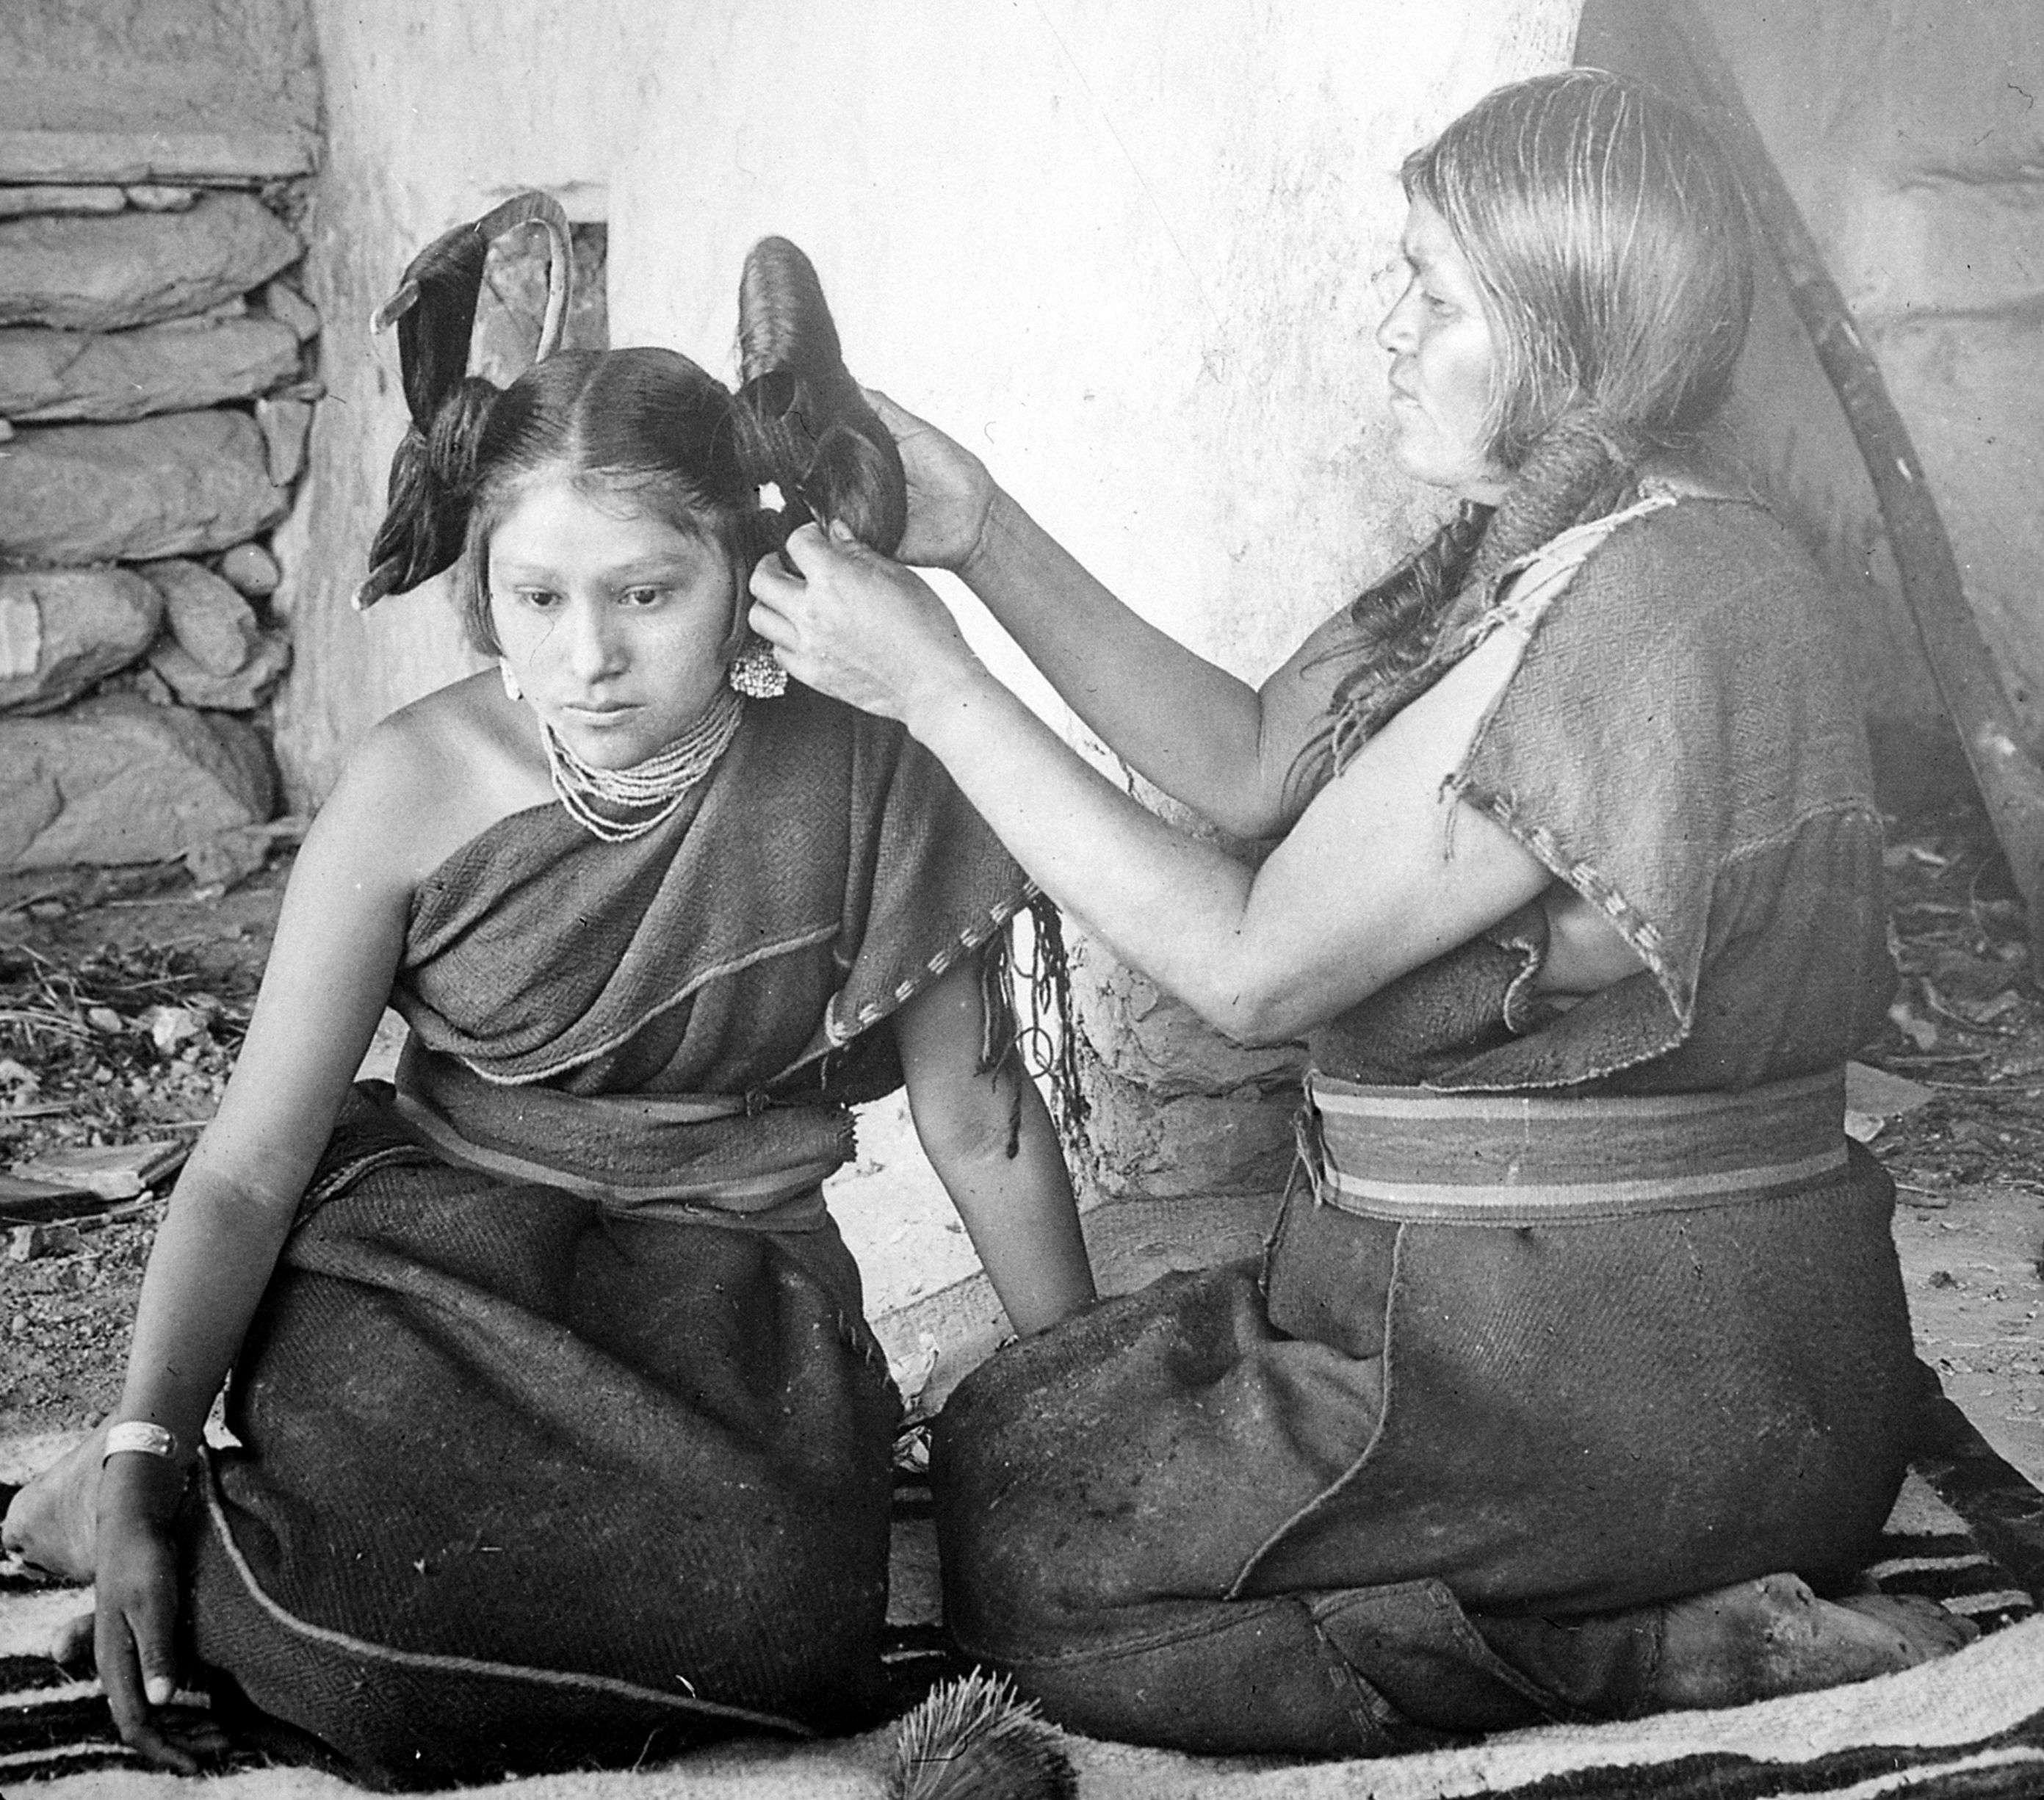 Native Americans discovered powerful secrets about hair long ago ...